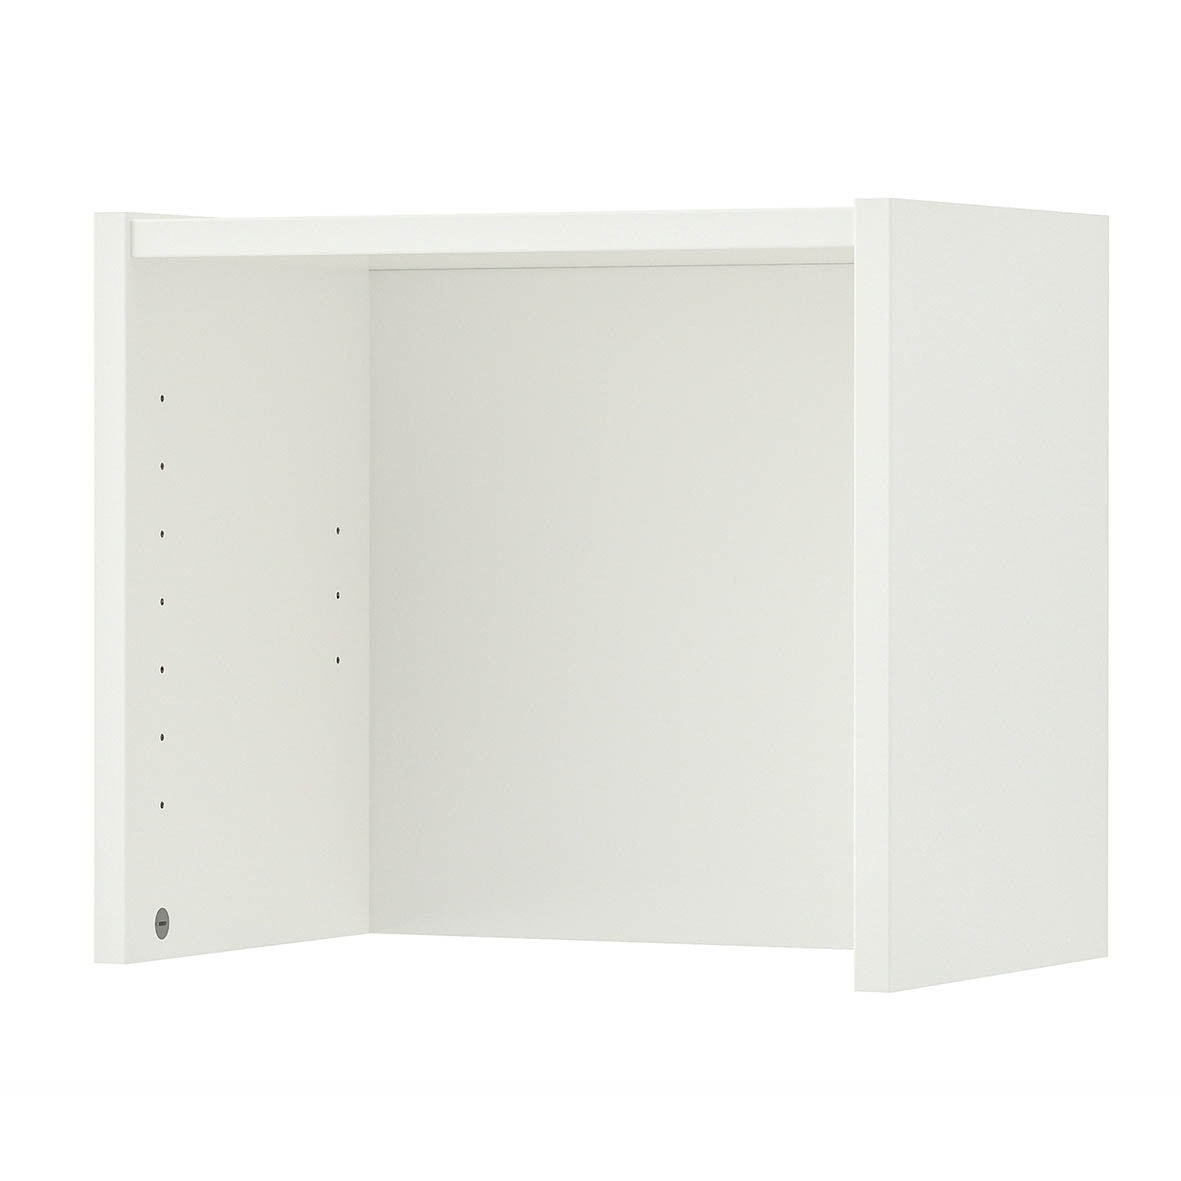 Ikea Billy Bookcase Extension 40x28x35cm, White